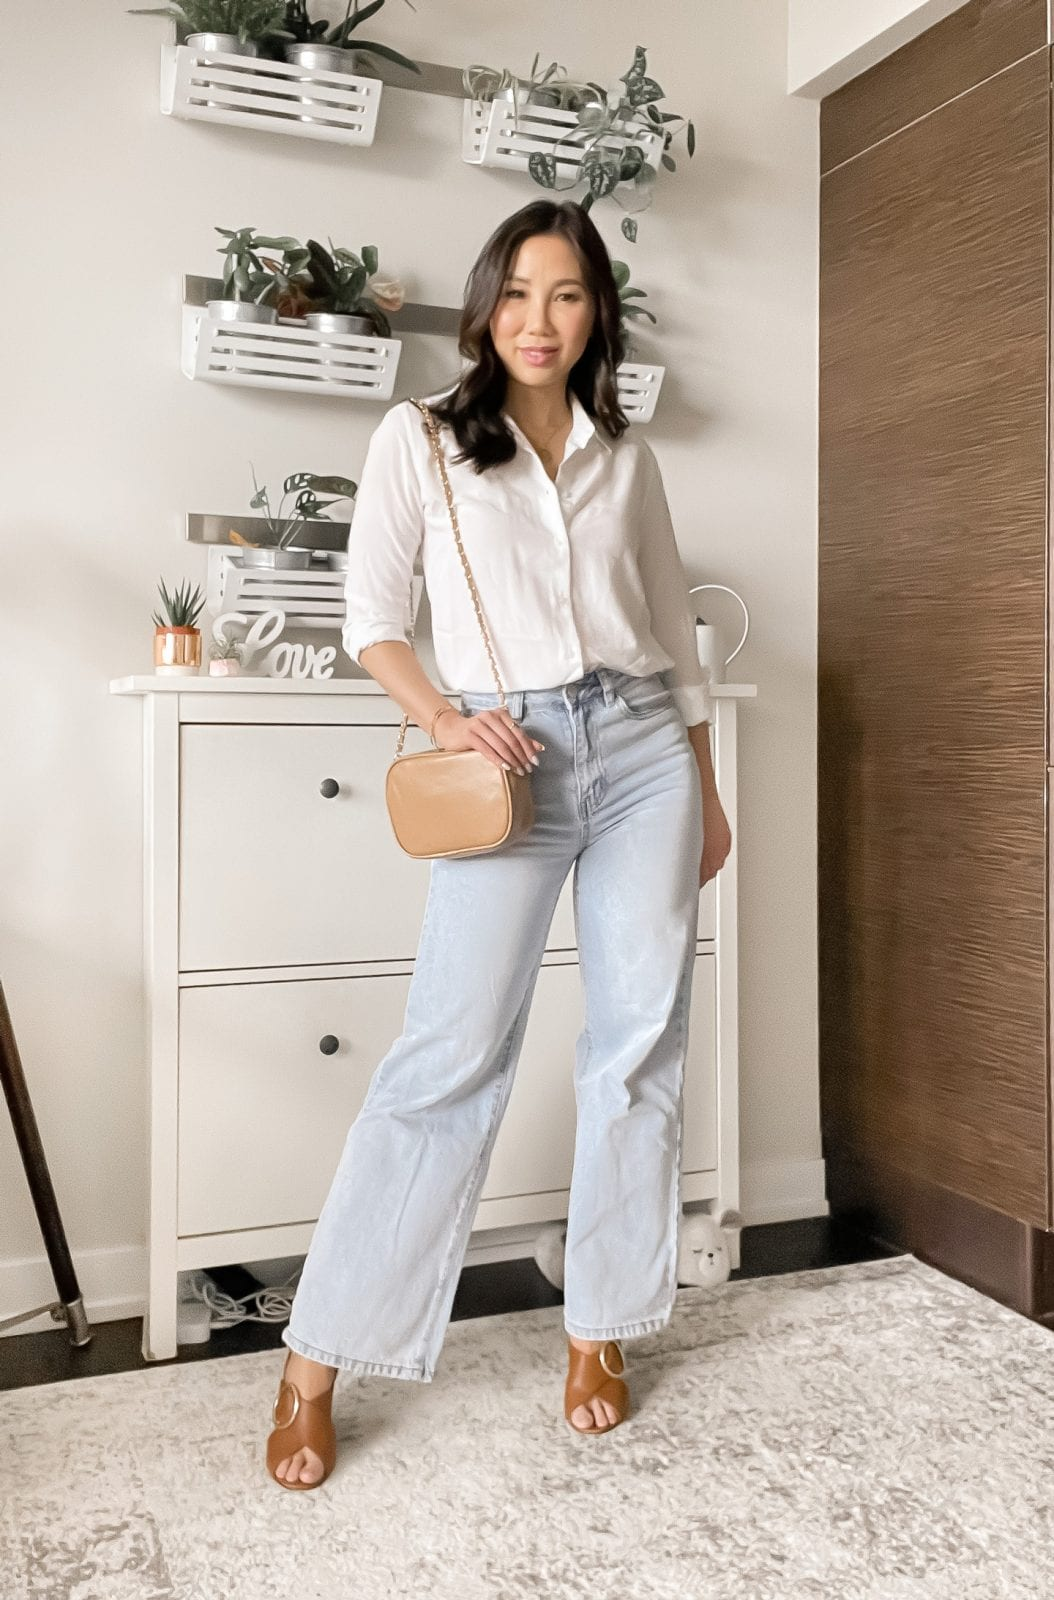 Wide leg jeans street style inspiration with button down shirt.